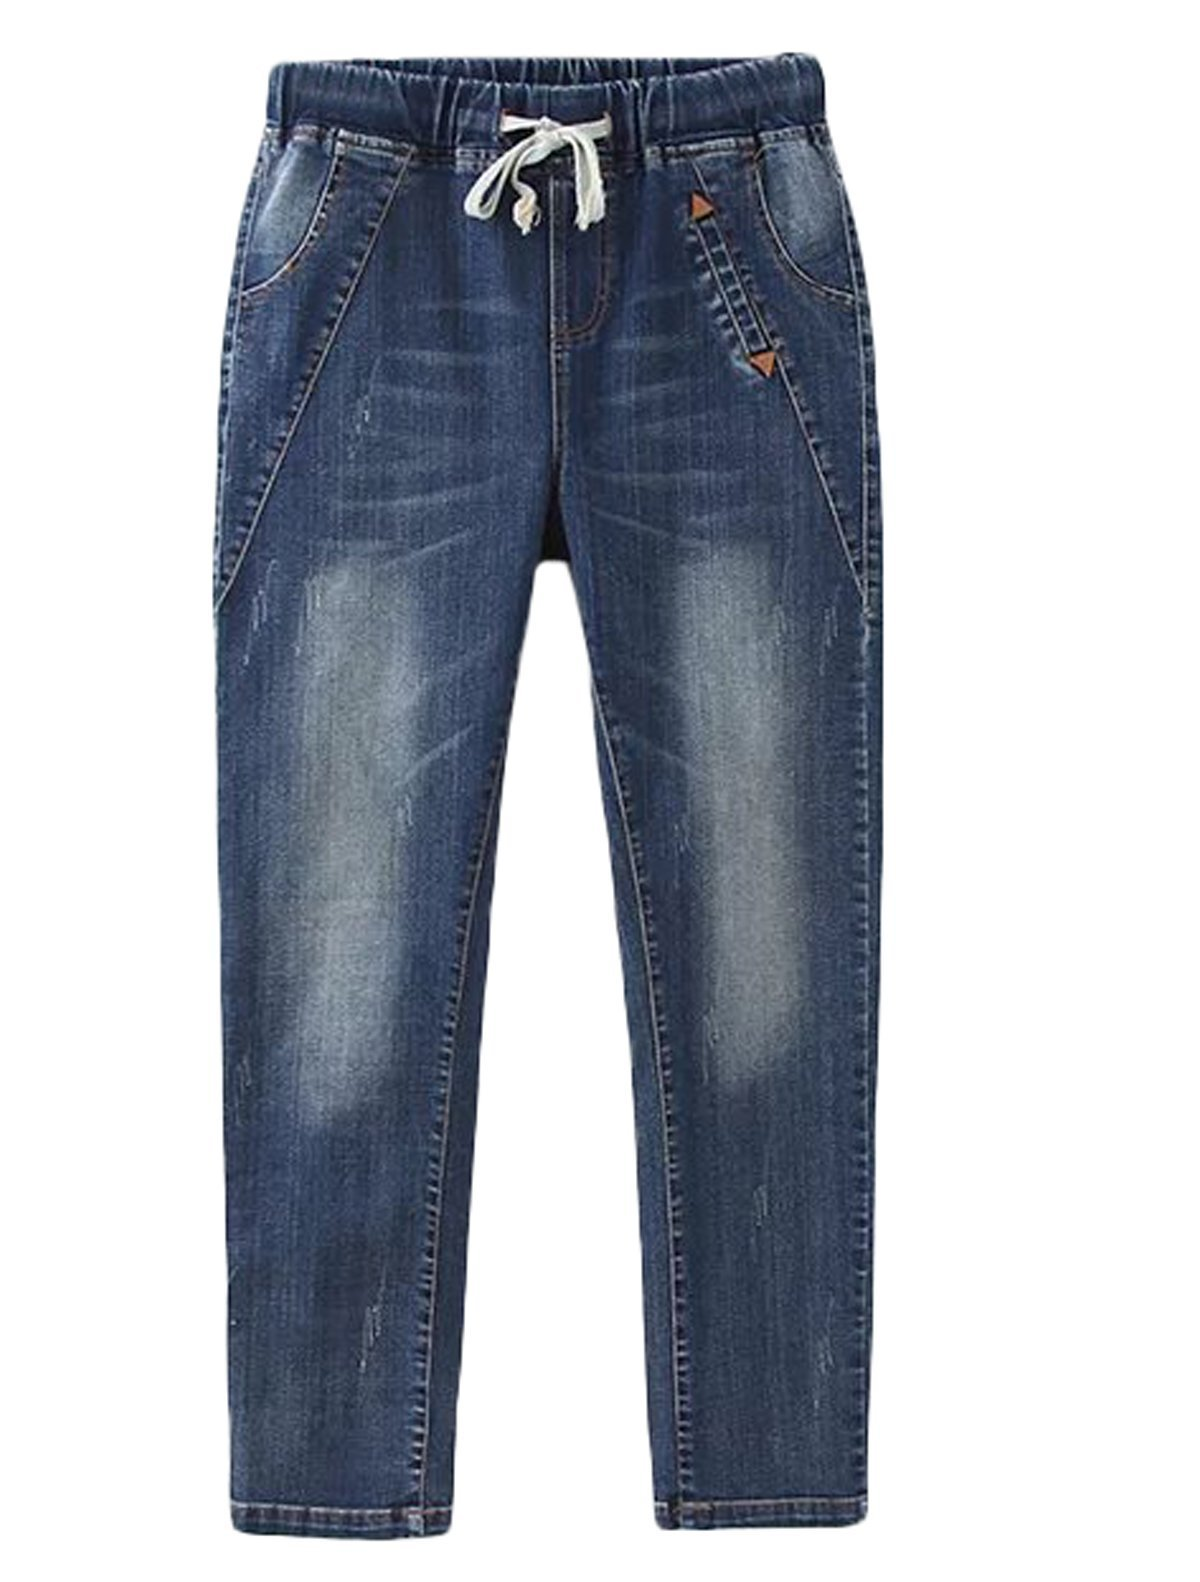 Mordenmiss Women's Straight Jeans Distressed Stretch Jeans Pants with Pockets XL